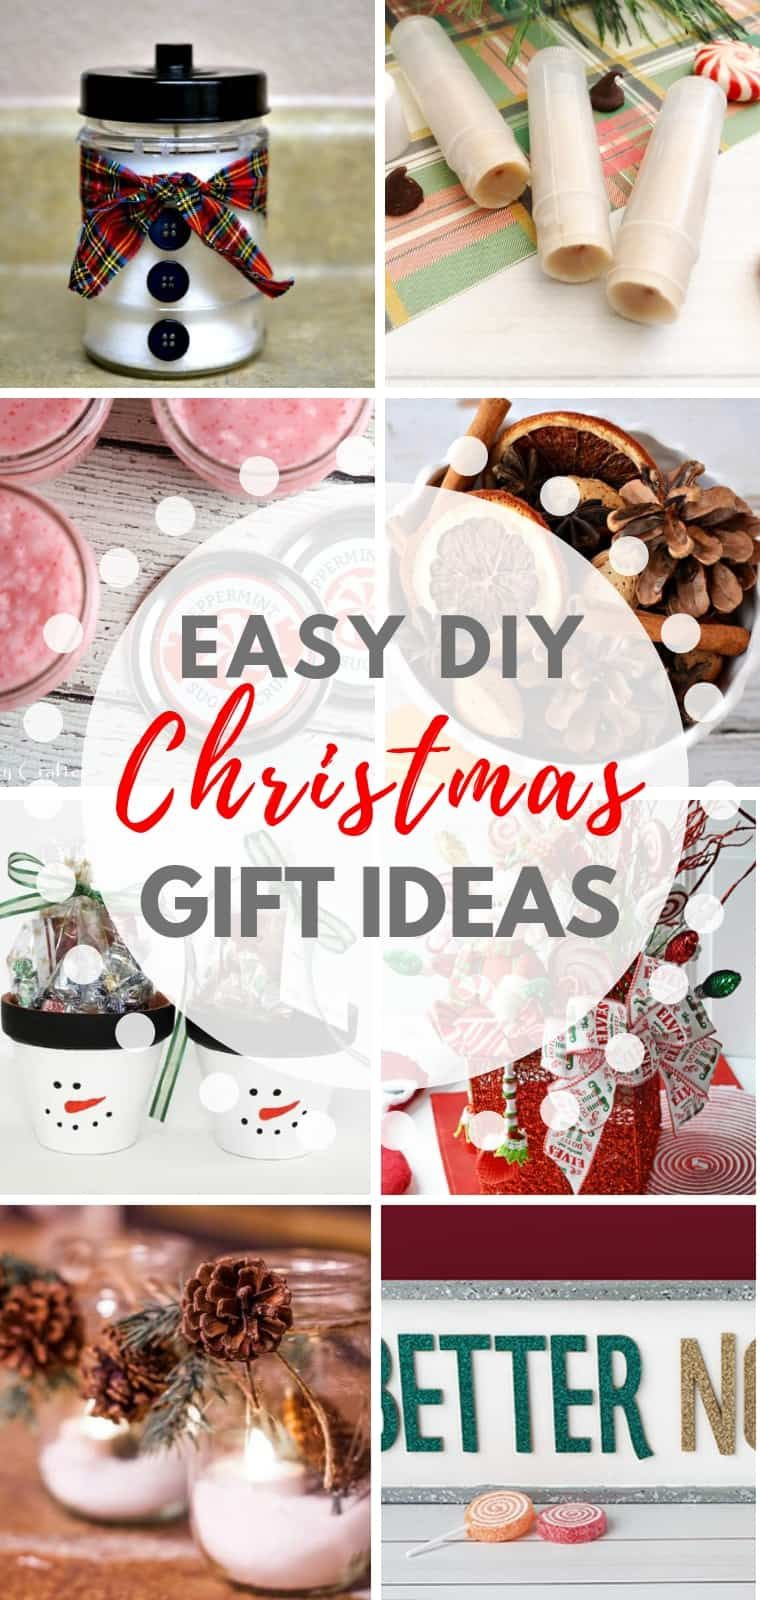 DIY Christmas Gifts People Will Love to Get - | DIY | Diy christmas ...